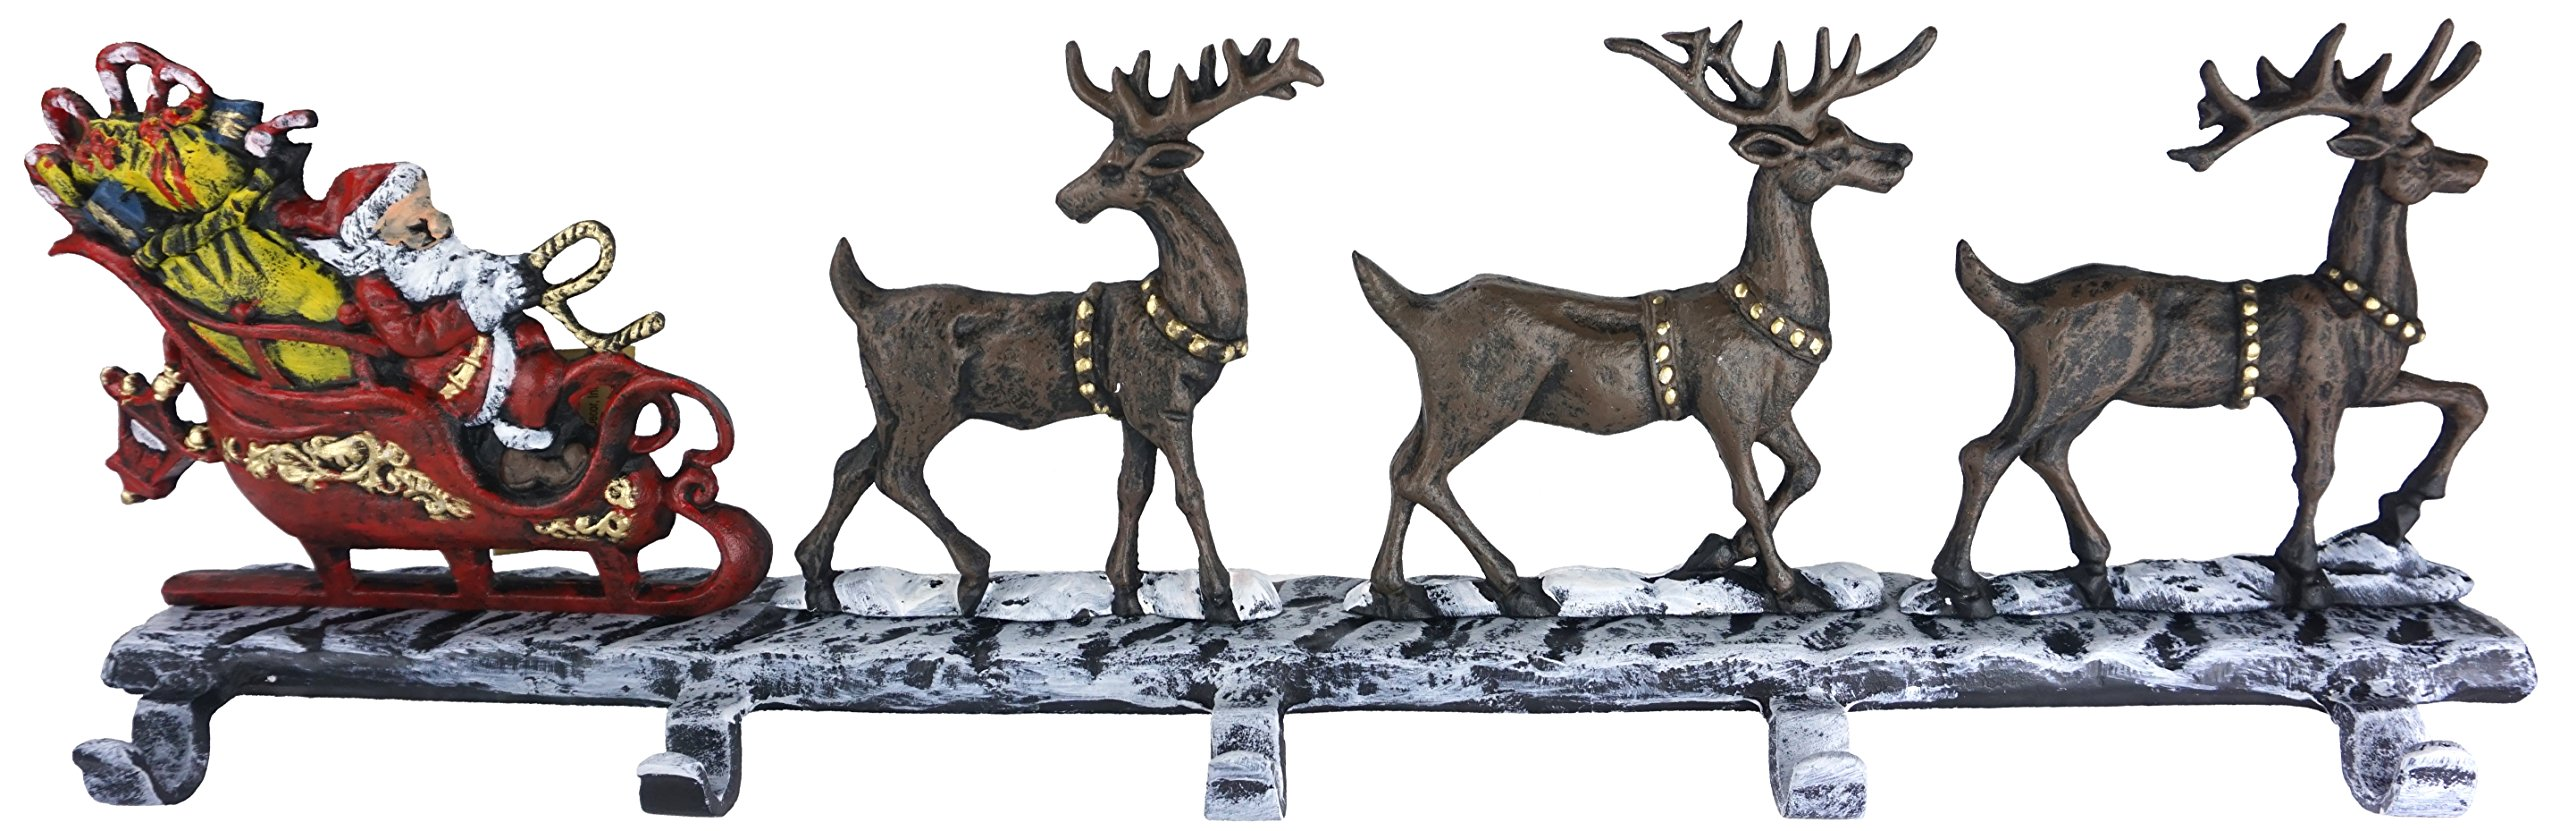 Lulu Decor, Cast Iron Christmas Stocking Holder with 5 Hooks, (weight 10 lbs) Unique design of Santa on decorated sleigh with 3 Deer, 28'' long, Perfect for holiday gifts/Christmas gifts (5 Hooks) by LuLu